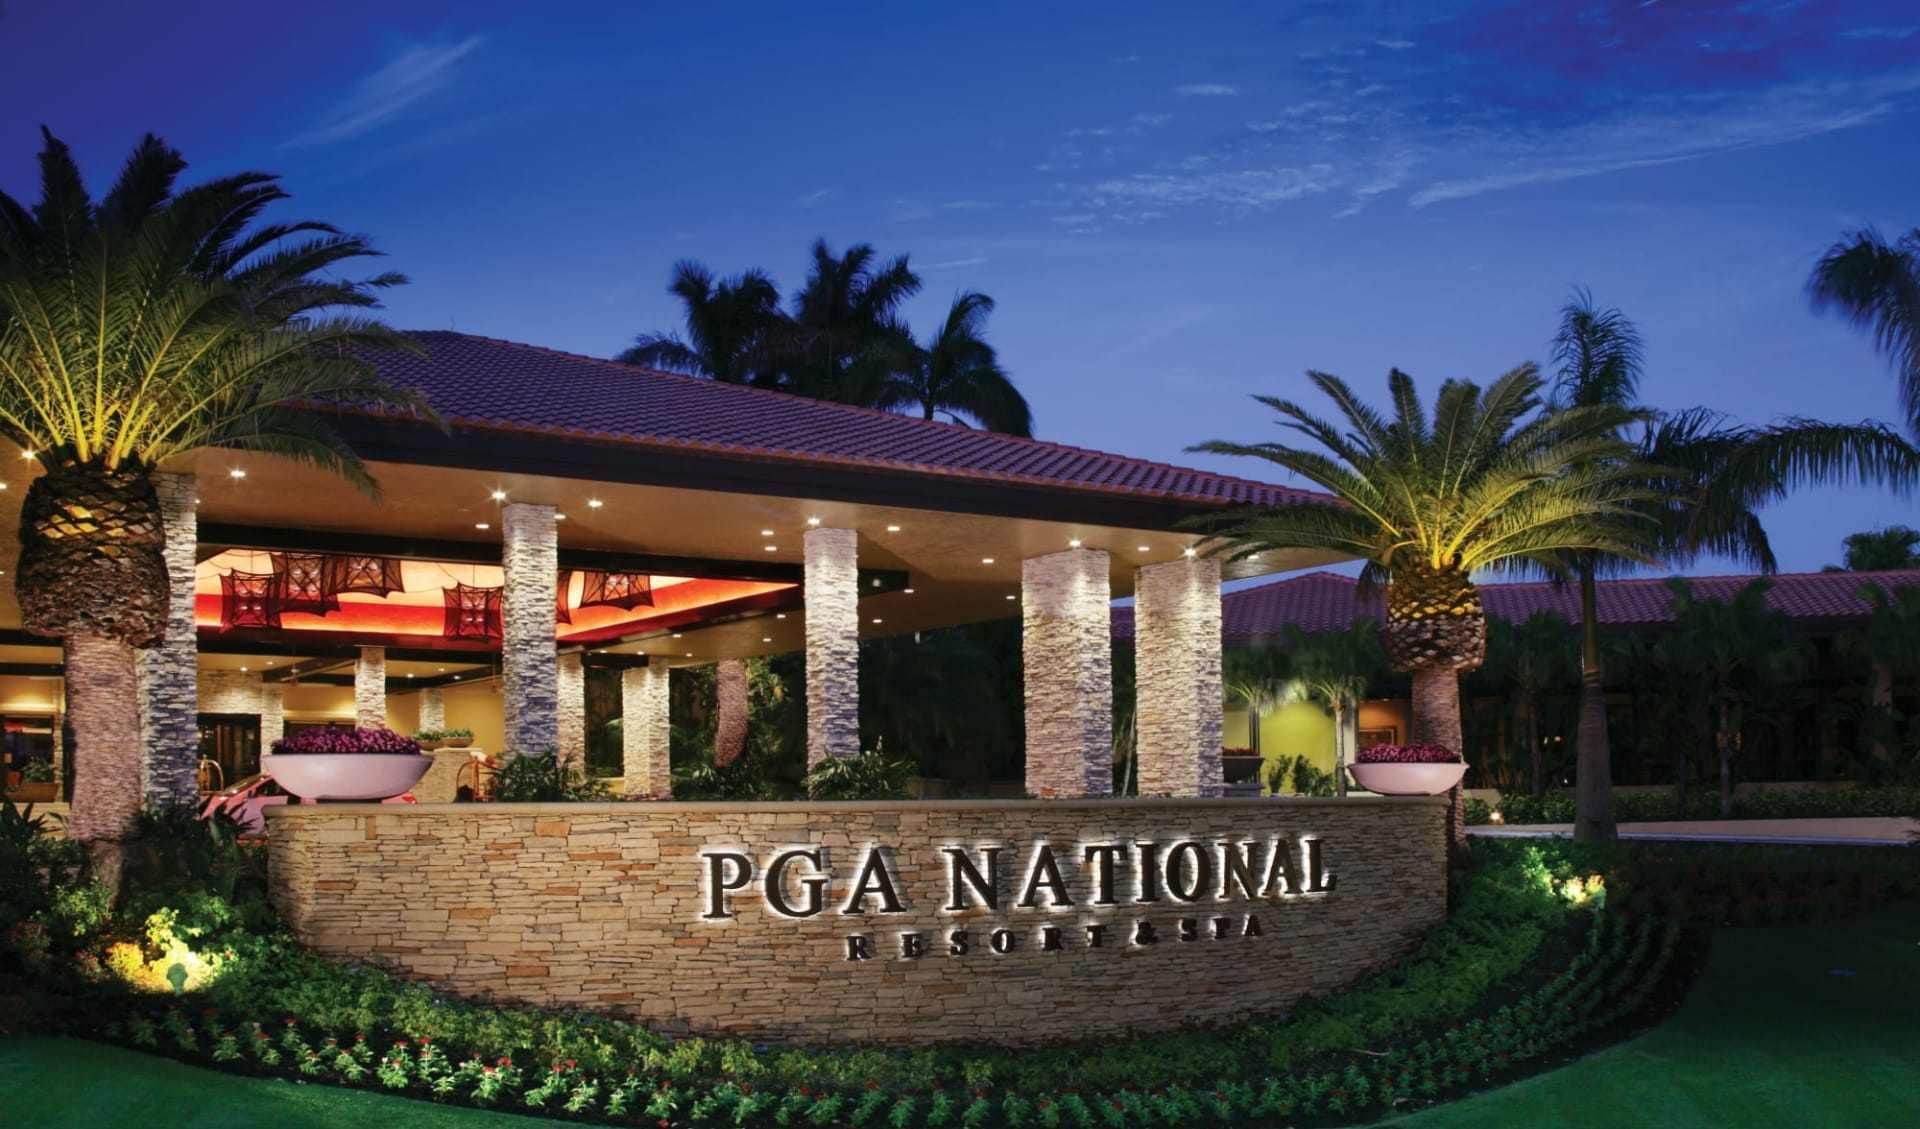 PGA National Resort in Palm Beach: PGA National Resort - Aussenansicht